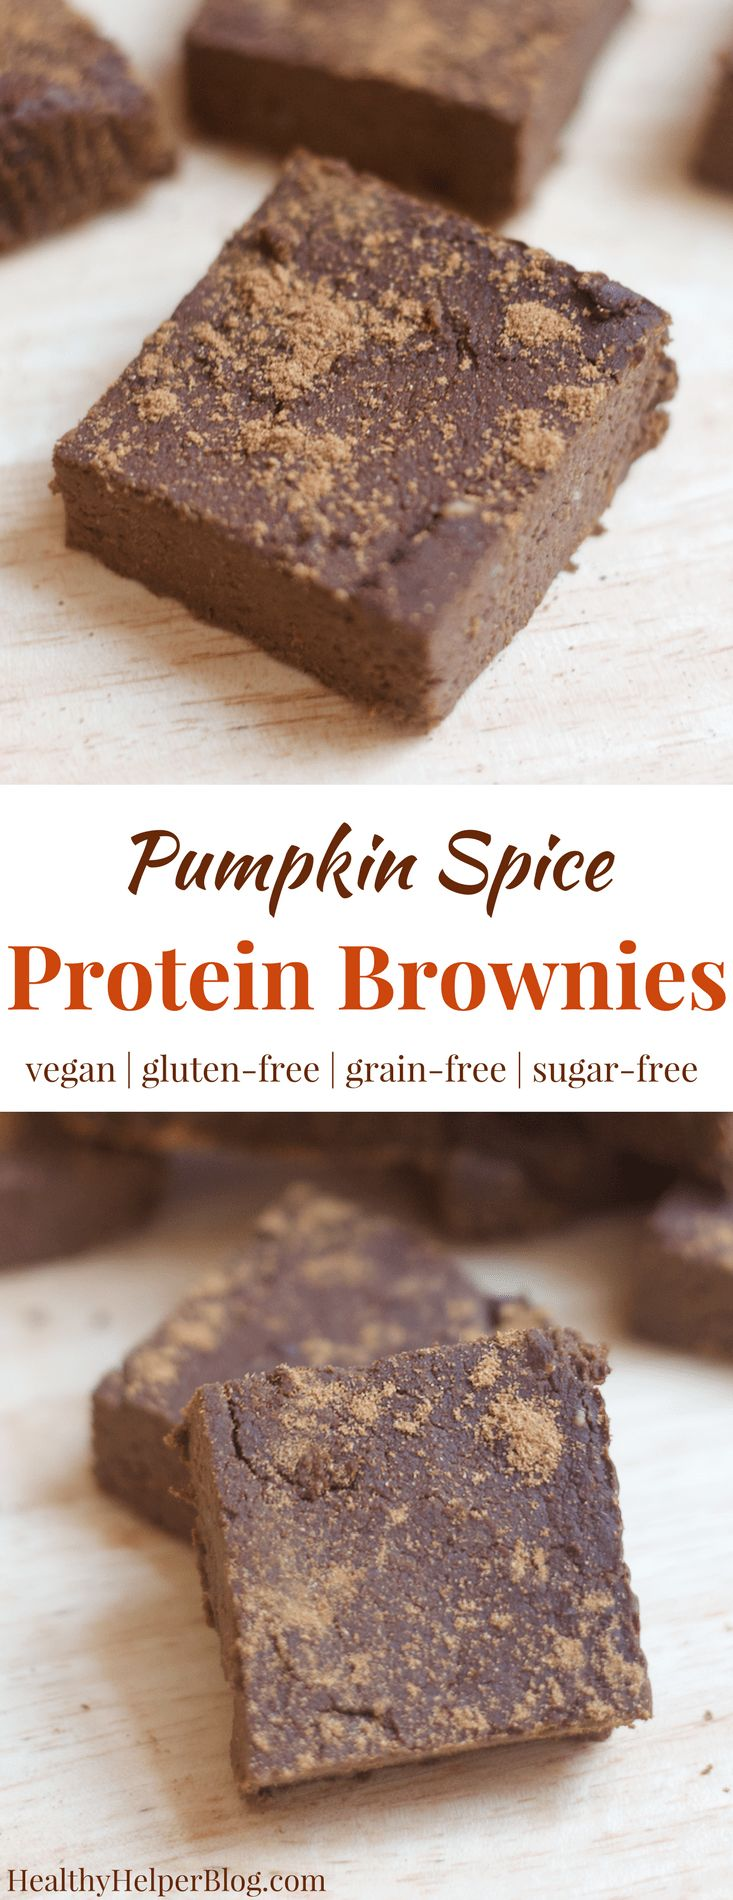 Pumpkin Spice Protein Brownies   Healthy Helper @Healthy_Helper Your favorite chocolate treat made HEALTHY and seasonal! These protein brownies are infused with the best flavor of fall...pumpkin spice! They're vegan, gluten-free, grain-free, and high in plant based protein, too!